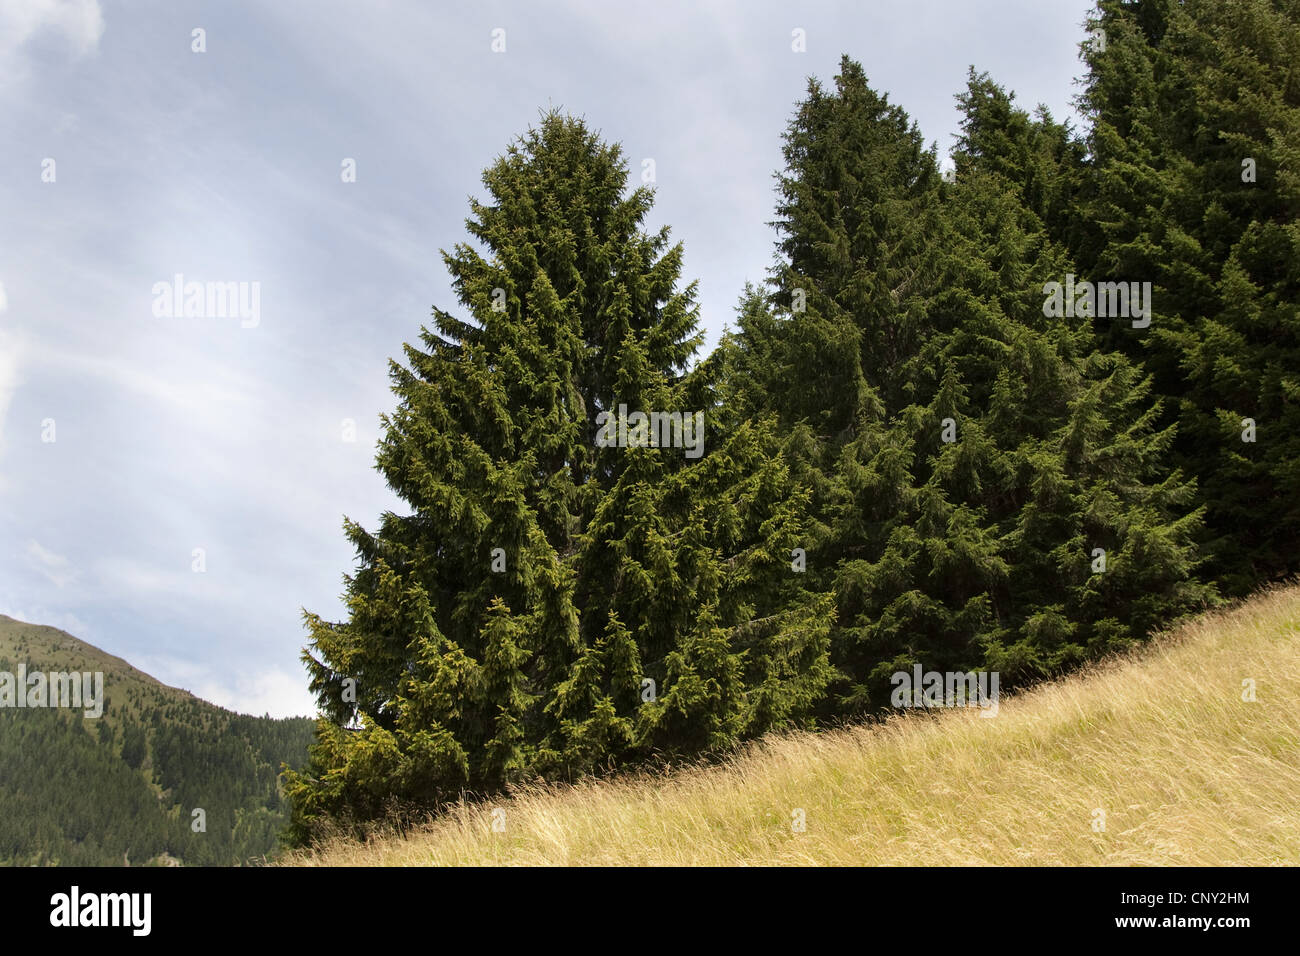 Norway spruce (Picea abies), trees at a forest edge, Germany - Stock Image